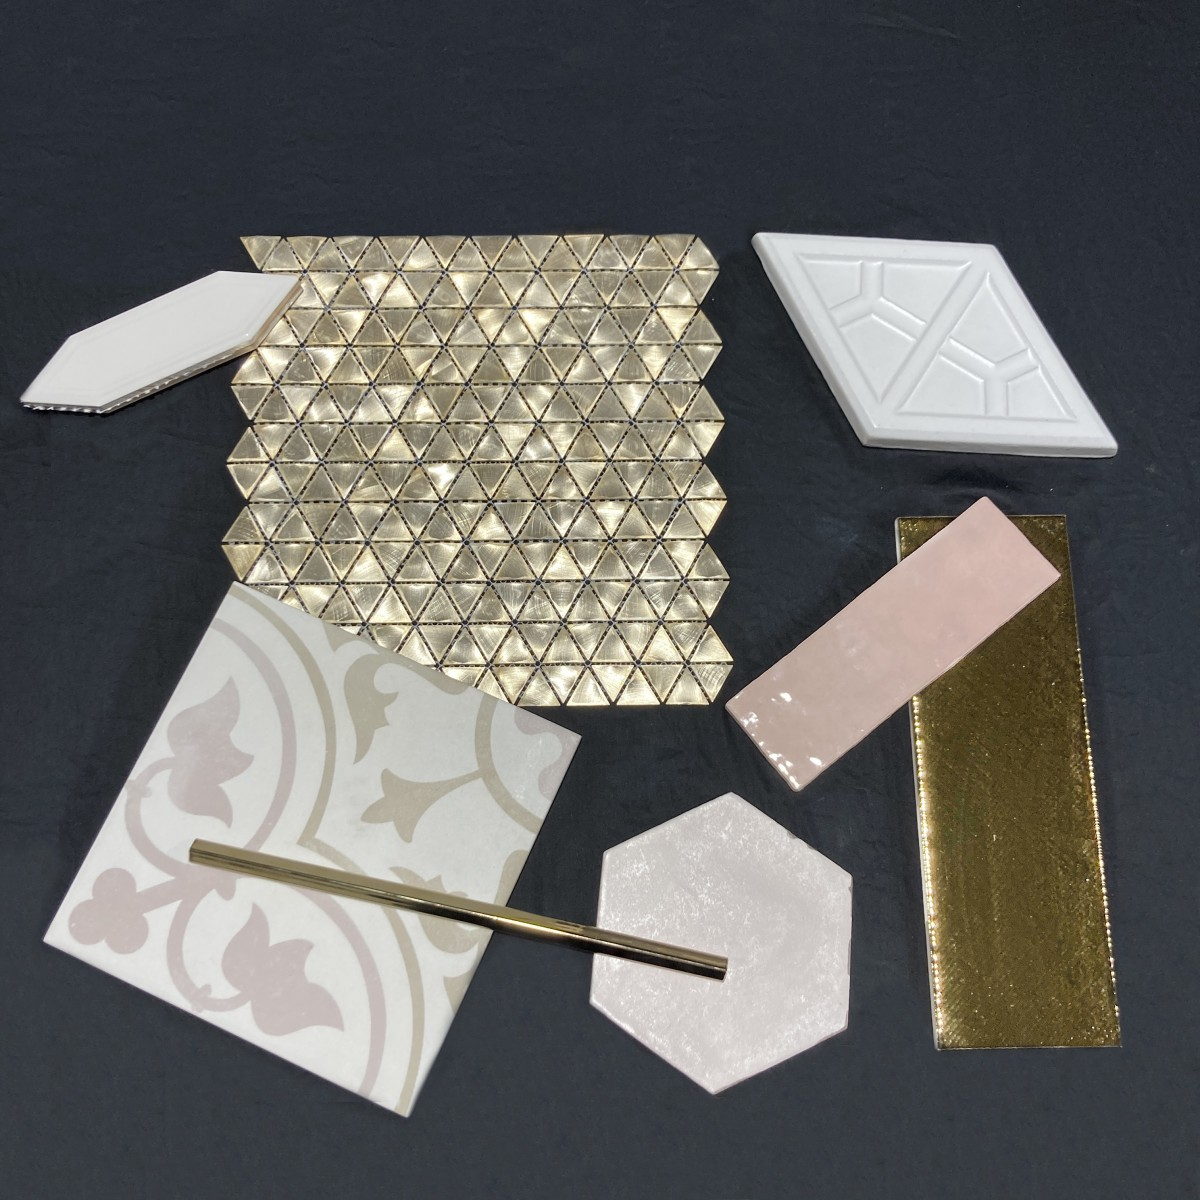 Soft glam, design inspiration for tile walls and floors made by Granite Division from Tyler Texas